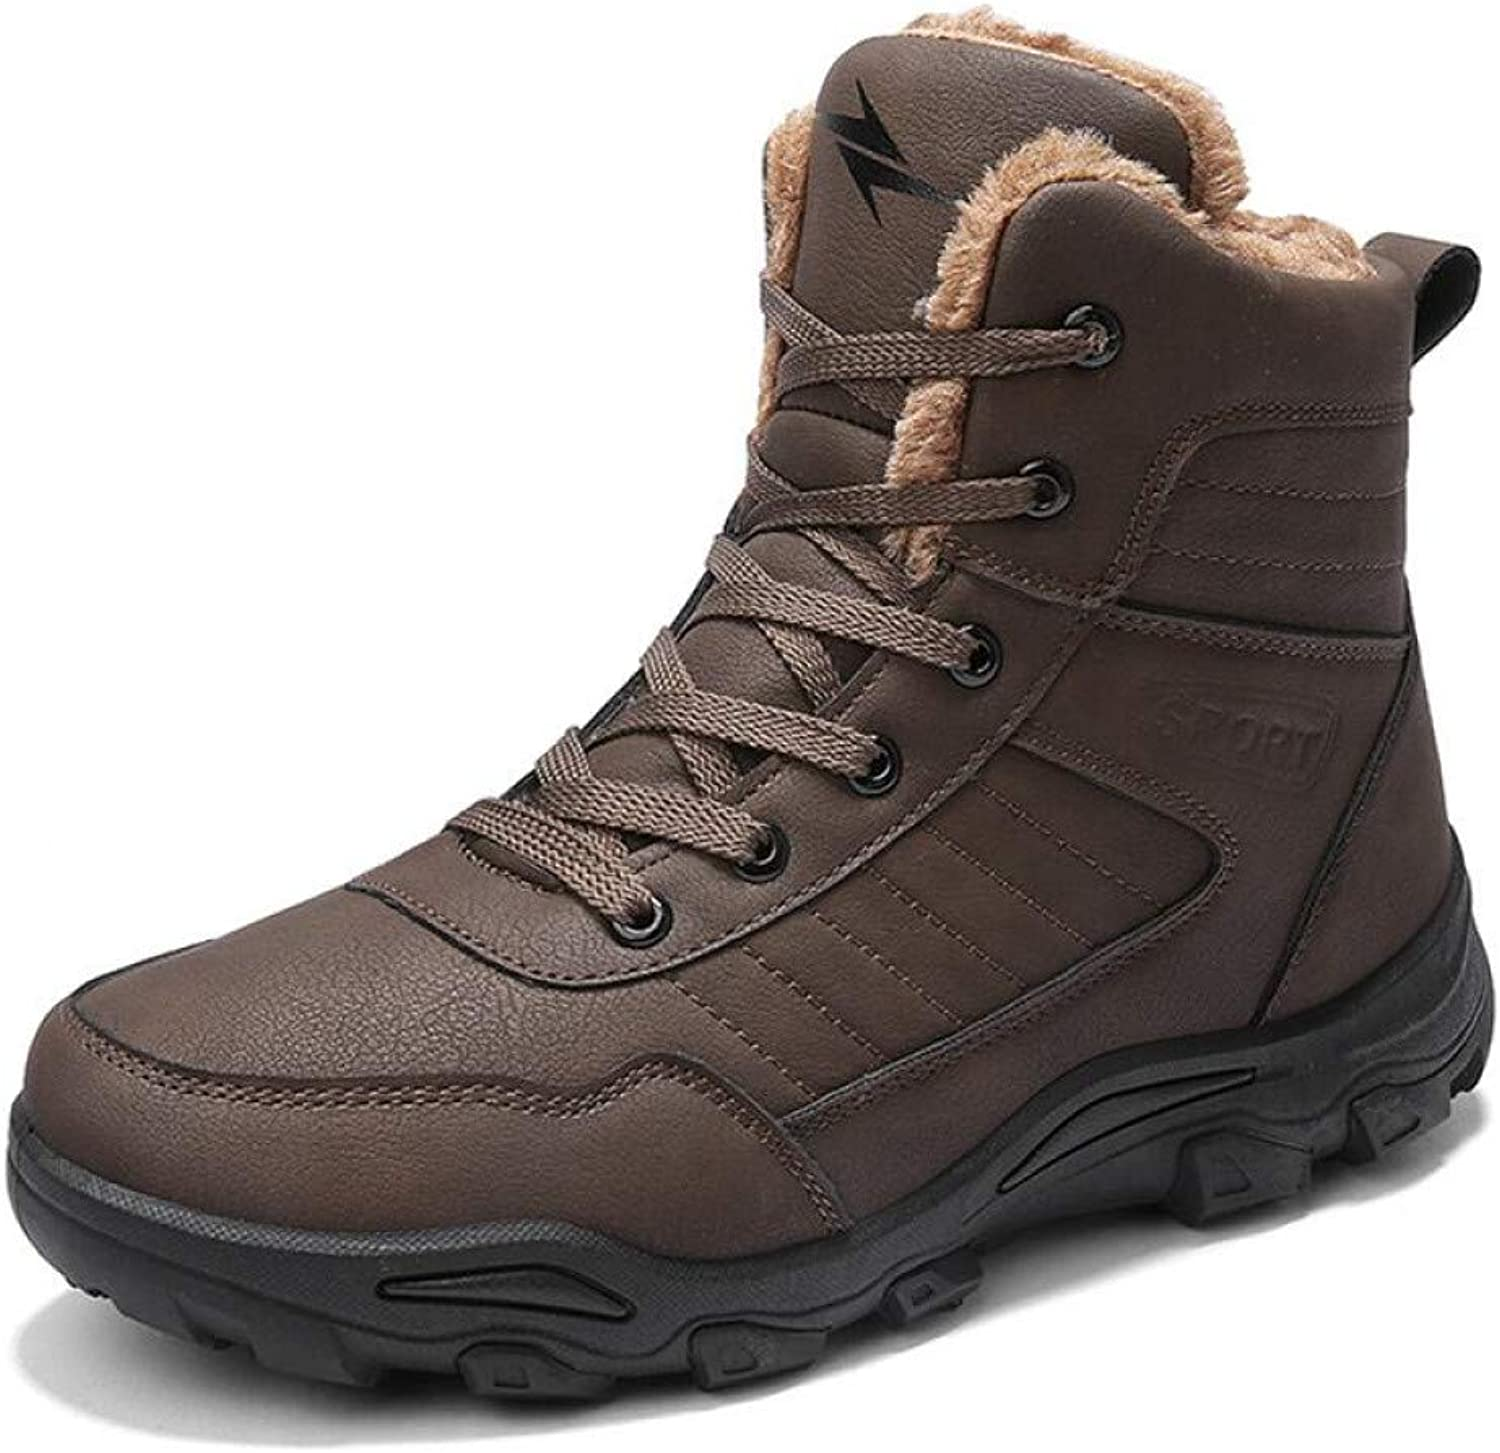 FHCGMX Men Boots Winter With Warm Snow Boots Men Winter Boots Work shoes Men Footwear Fashion Rubber Ankle Boots 39-46